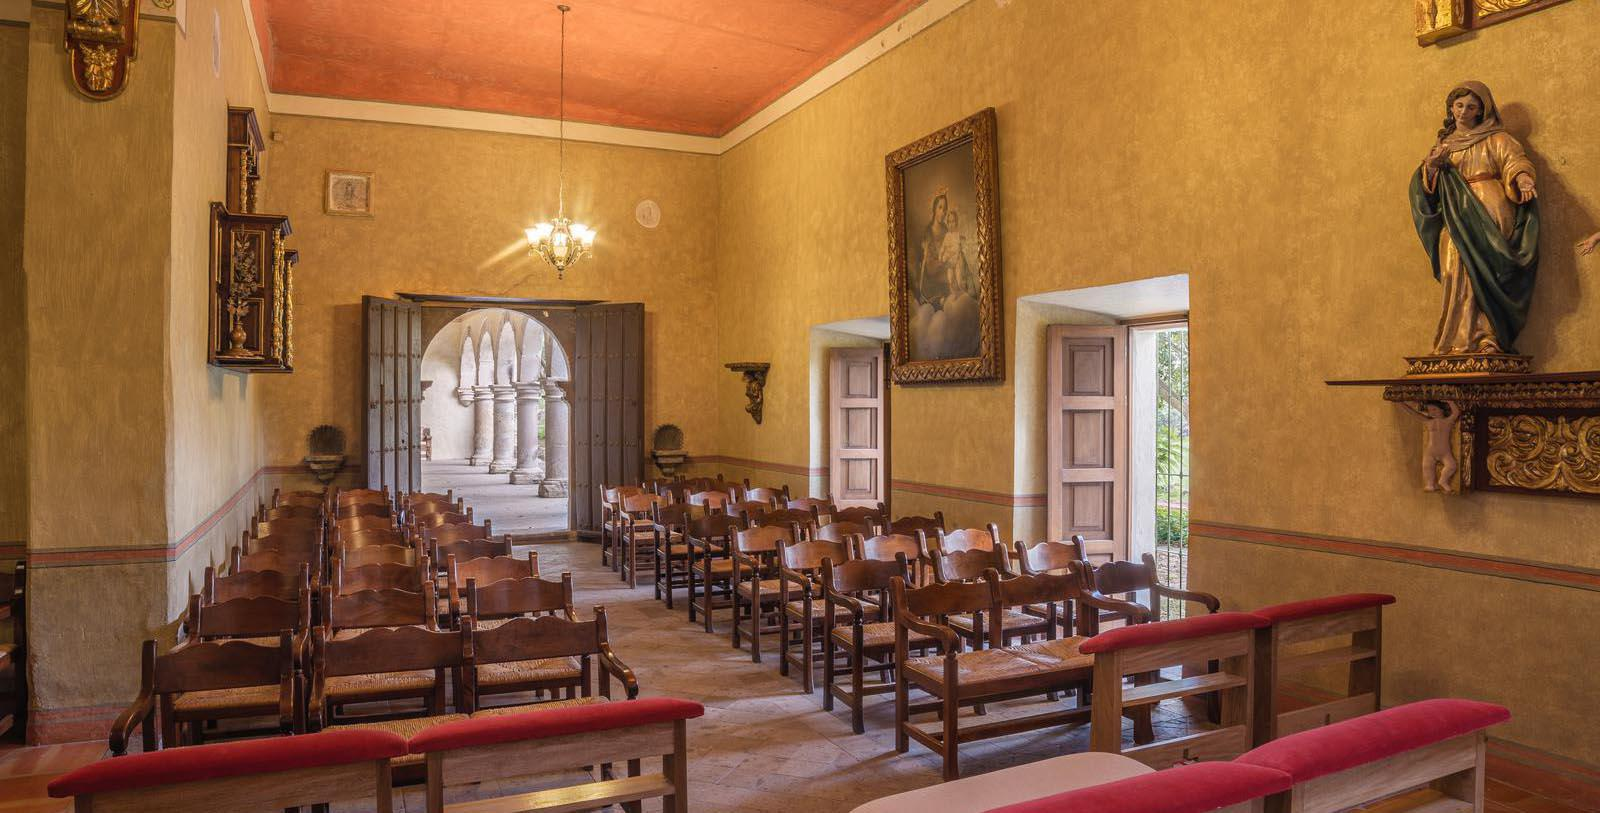 Image of Meeting Space Classroom, Hacienda Labor de Rivera, Teuchitlán, Mexico, 1700, Member of Historic Hotels Worldwide, Discover